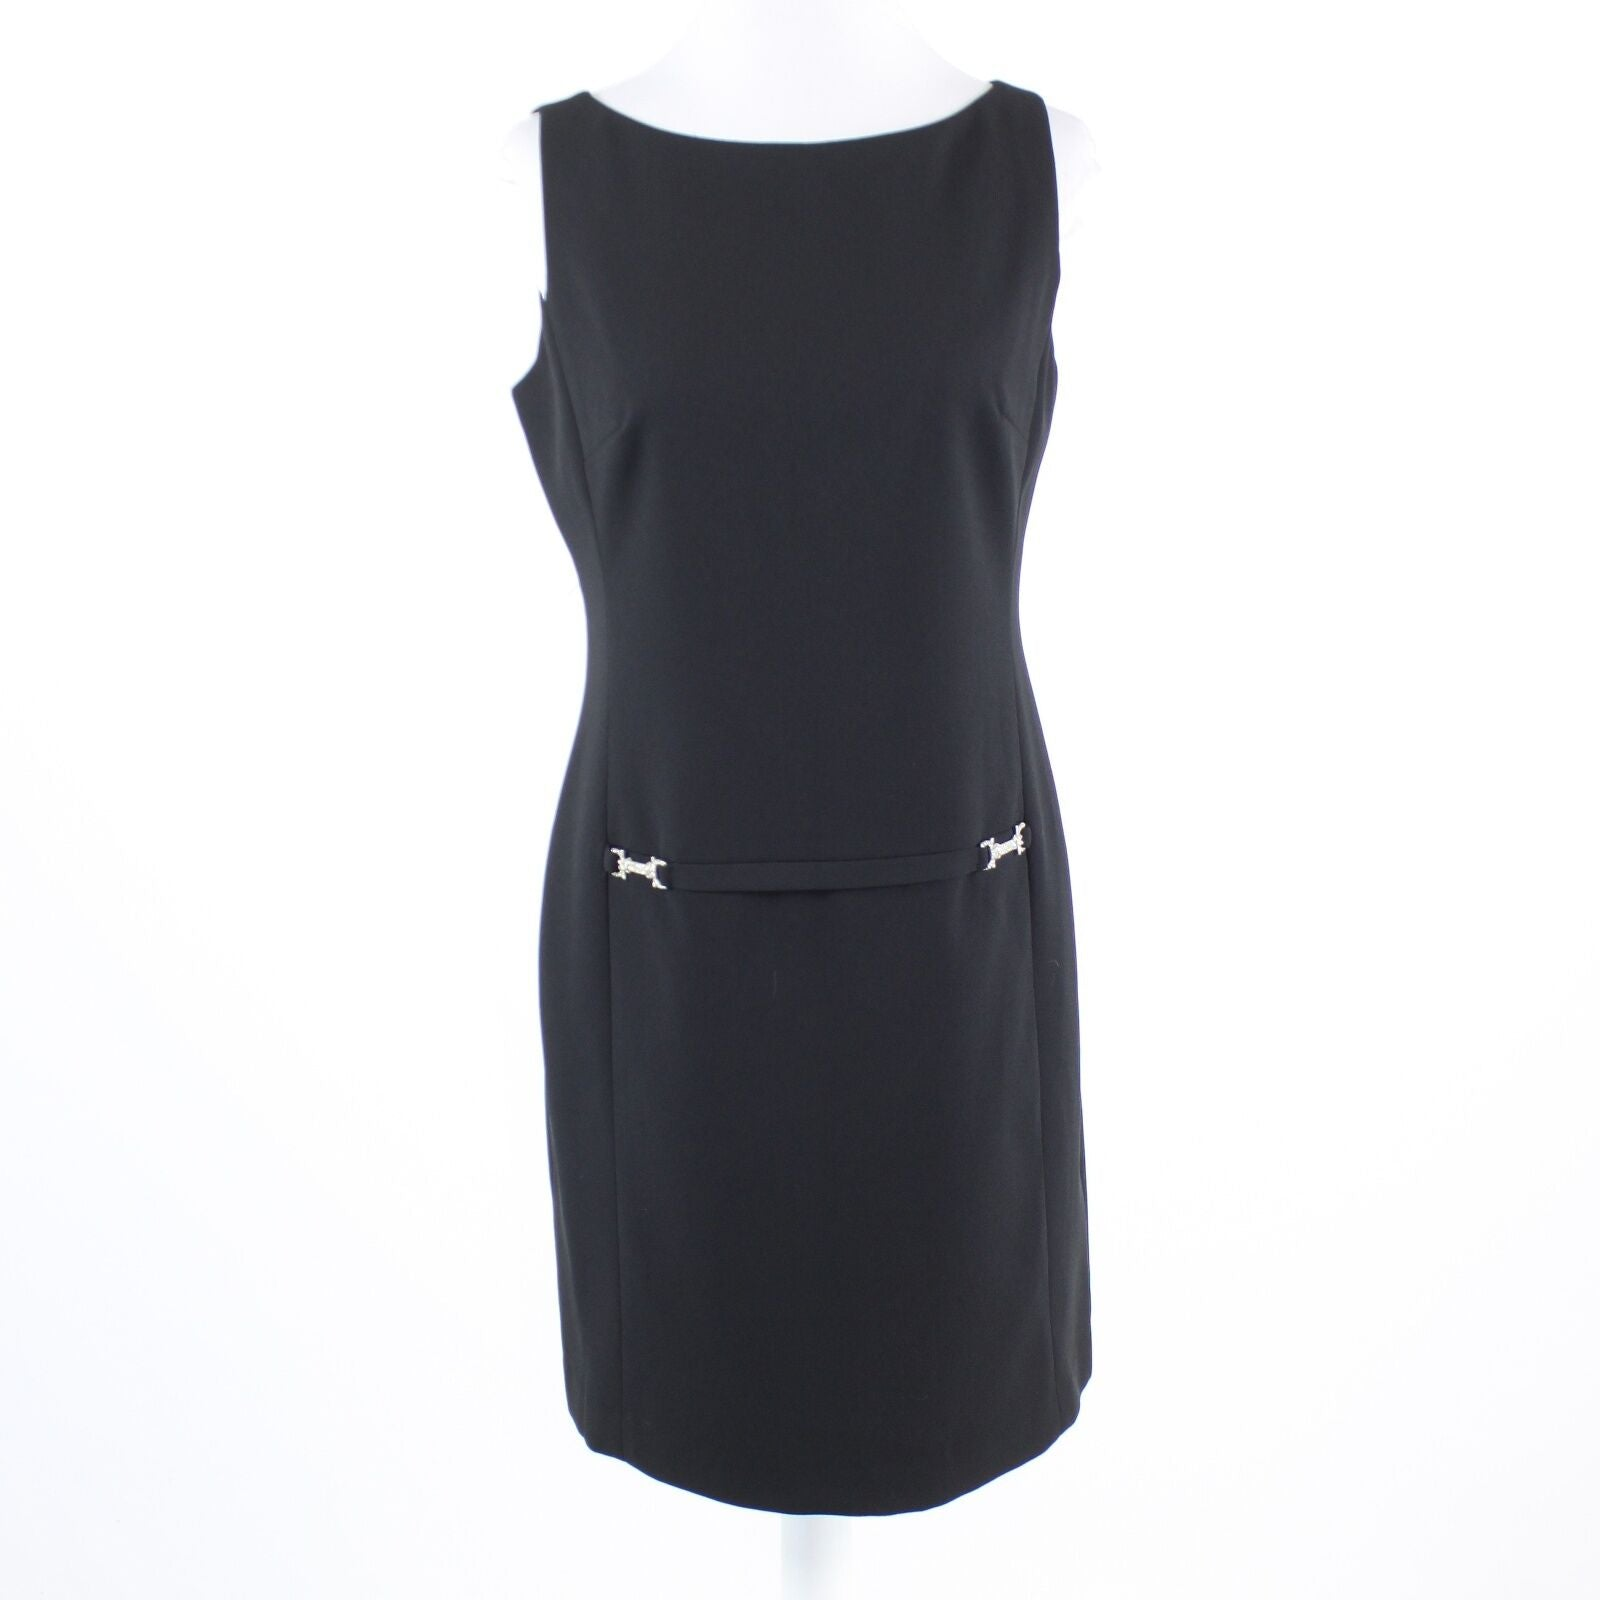 Black LAUNDRY By Shelli Segal sleeveless sheath dress 8 NWT $200